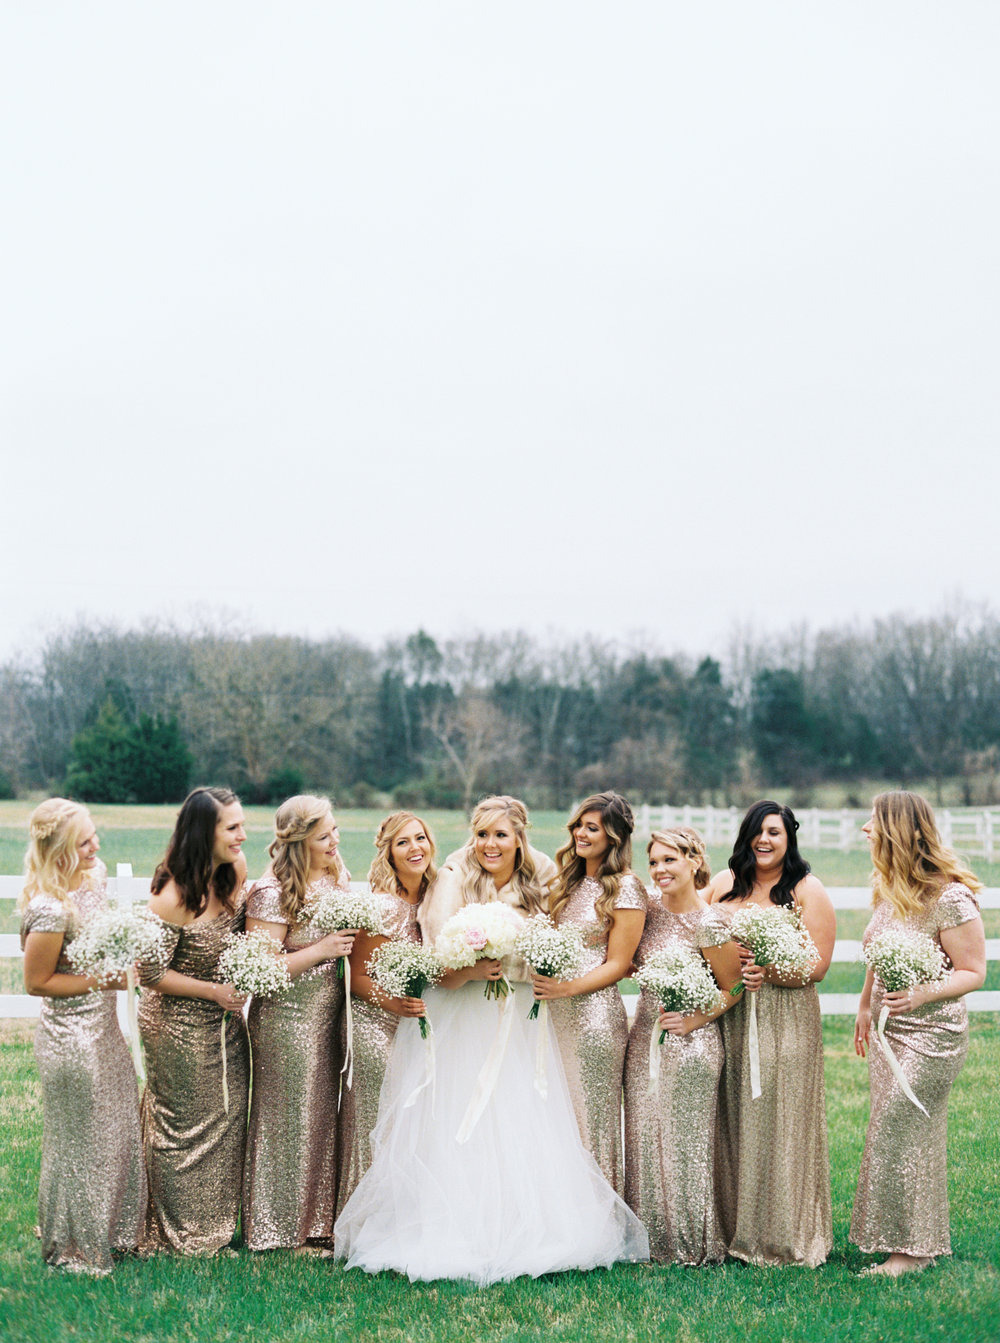 Saddle Wood Farm - Nashville, TN Wedding - New Year's Eve Wedding